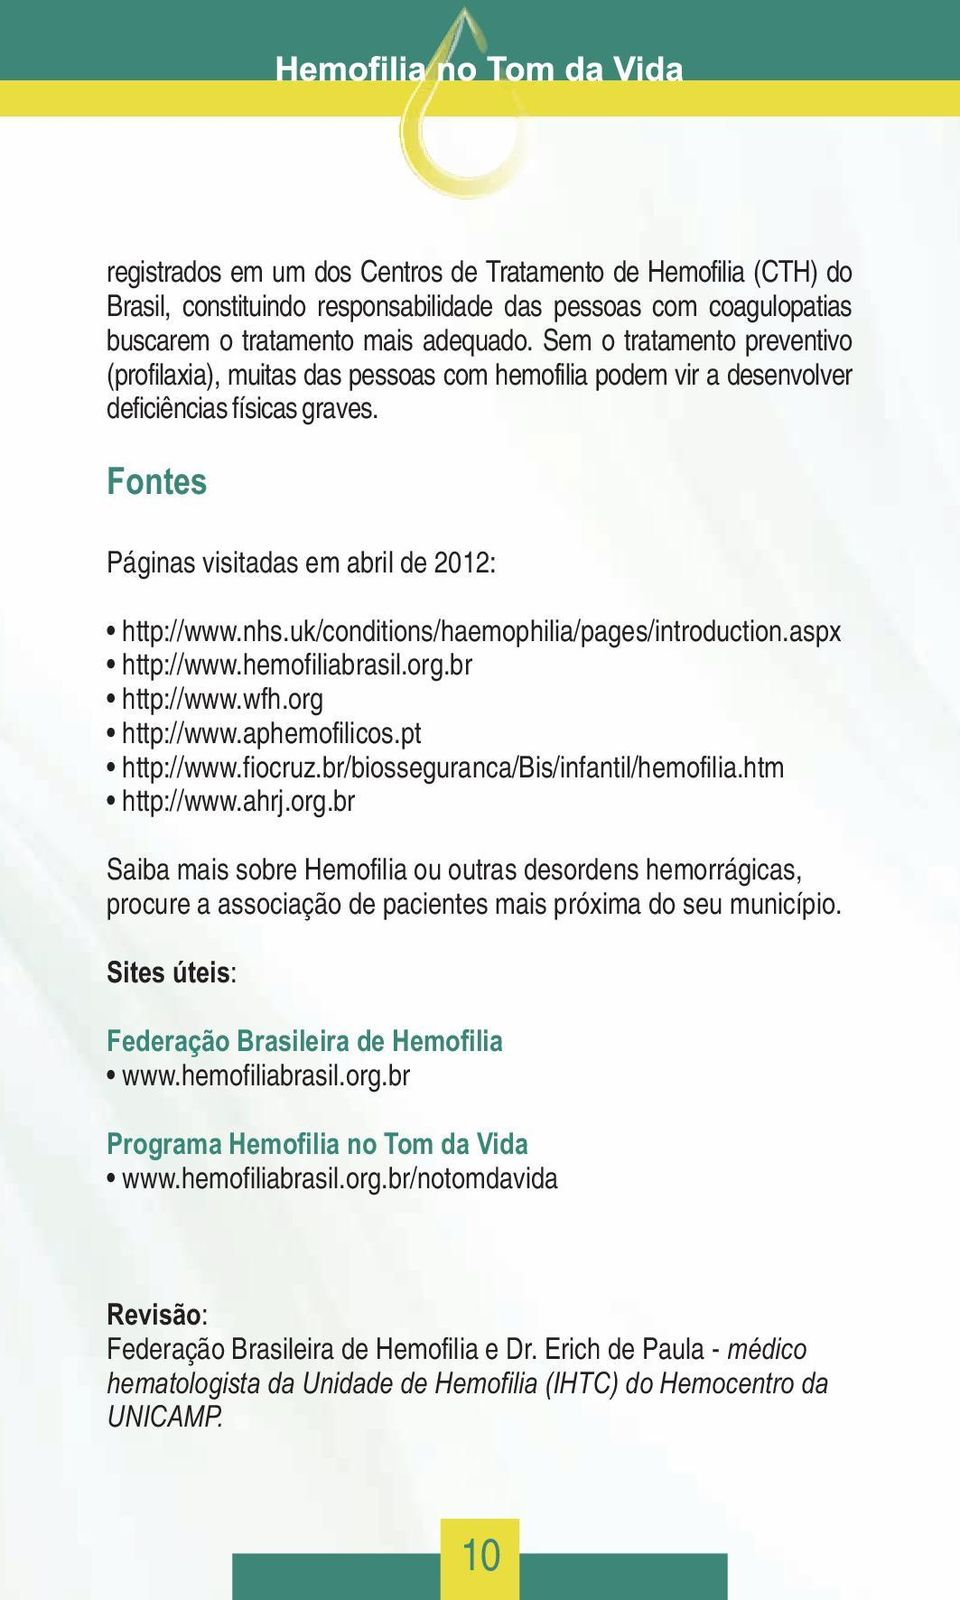 uk/conditions/haemophilia/pages/introduction.aspx http://www.hemofiliabrasil.org.br http://www.wfh.org http://www.aphemofilicos.pt http://www.fiocruz.br/biosseguranca/bis/infantil/hemofilia.